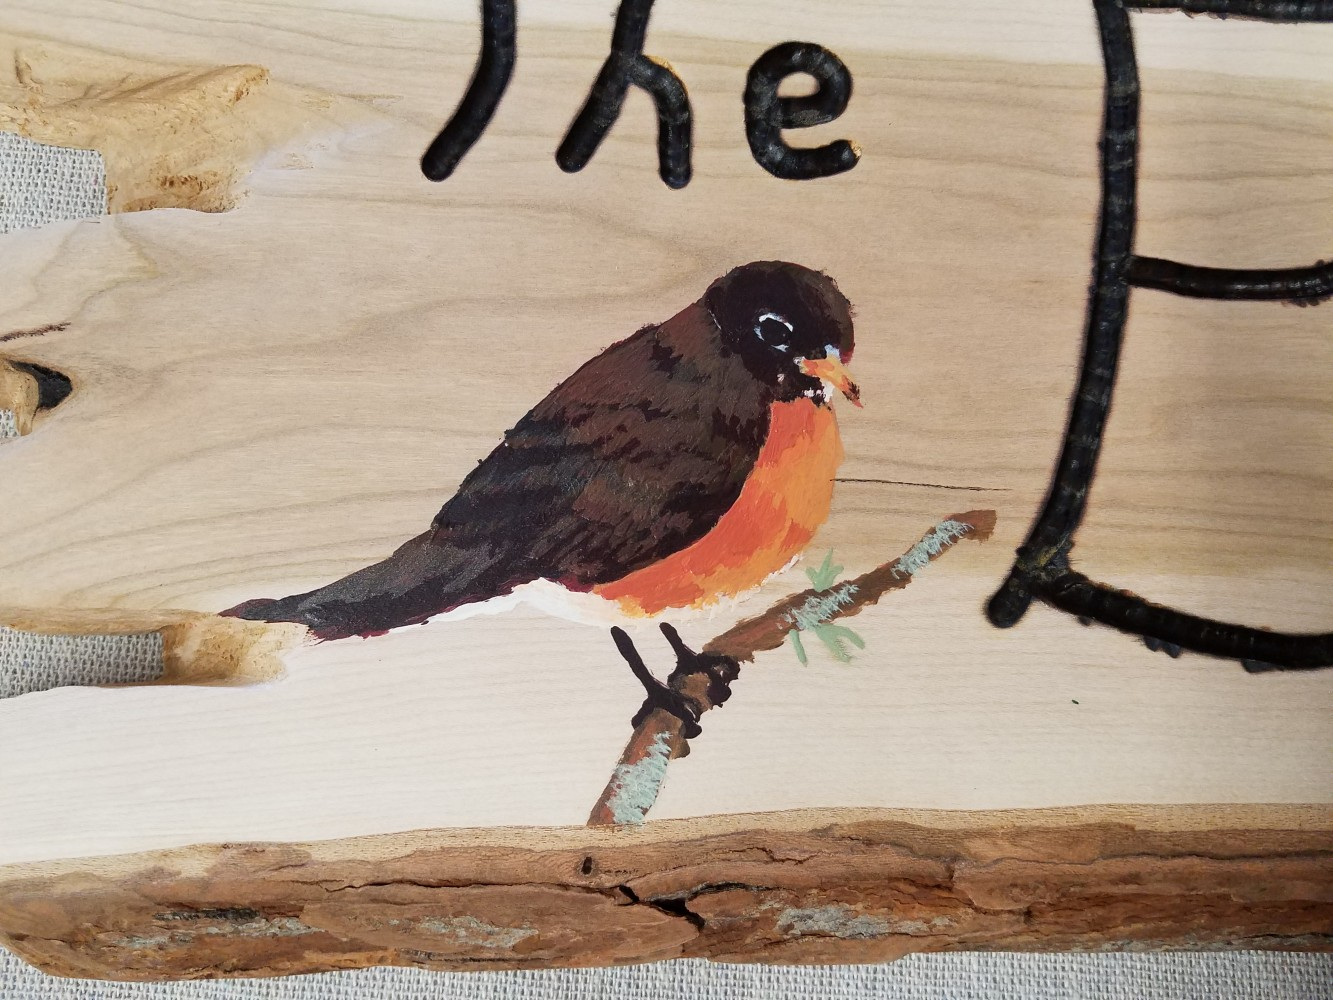 Painted bird by Kido